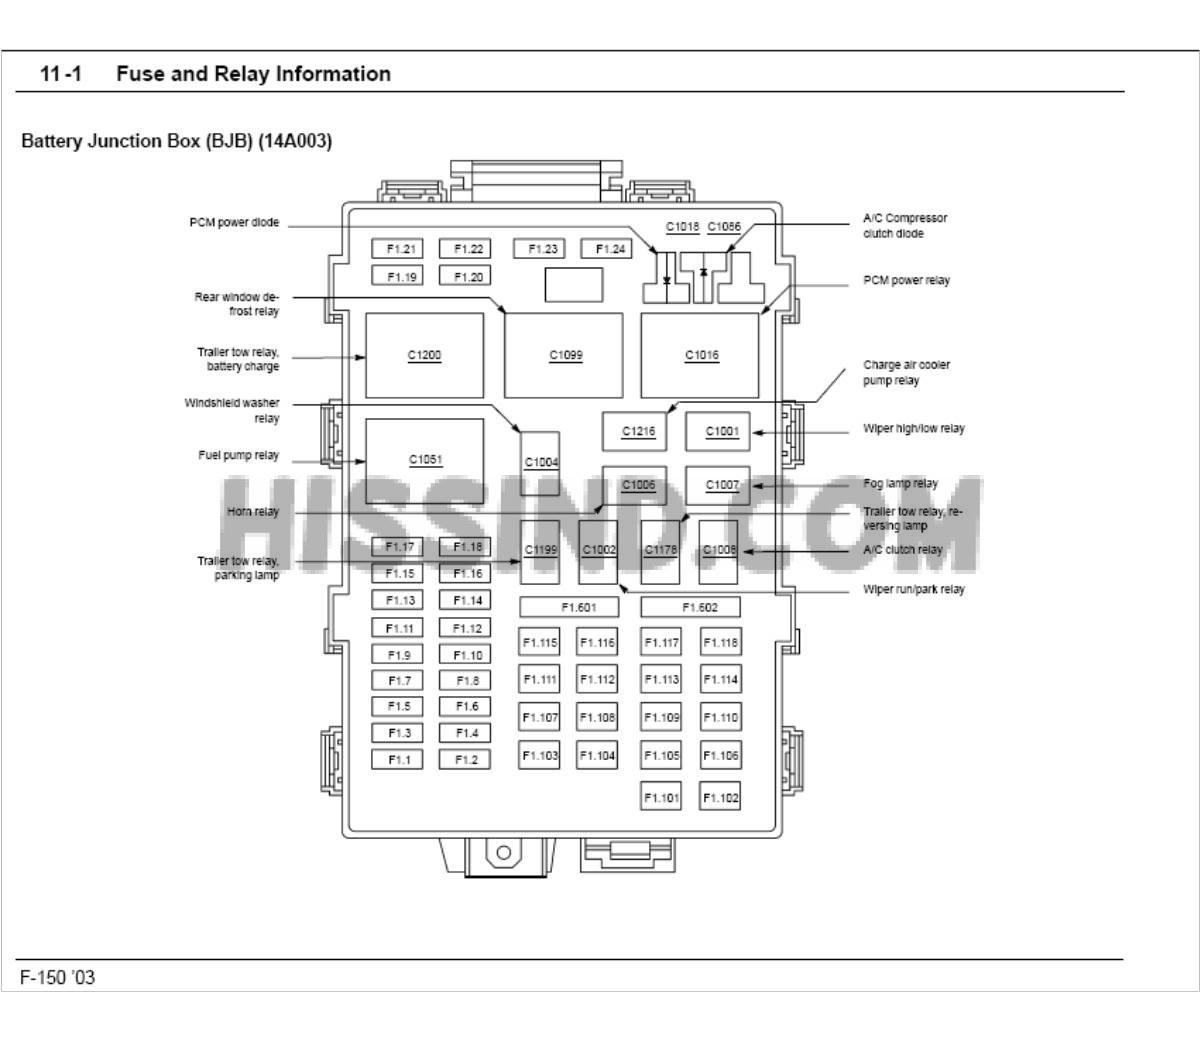 small resolution of 2000 f150 fuse box diagram trusted wiring diagram 2004 hyundai santa fe fuse box diagram 05